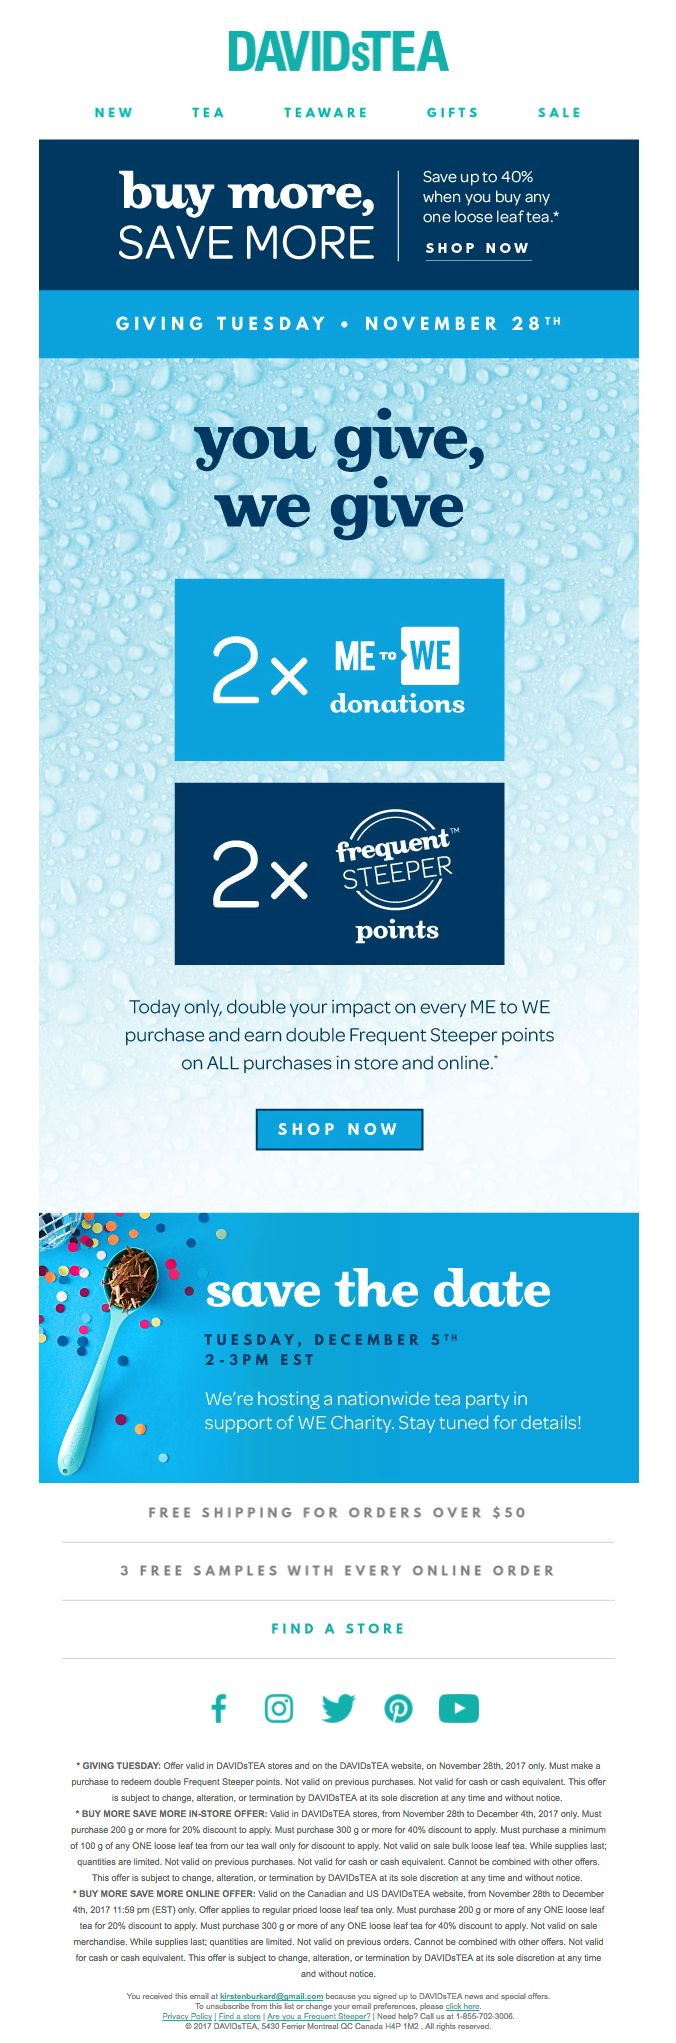 This bonus campaign from DAVIDsTEA puts their charitable partnership front and center.